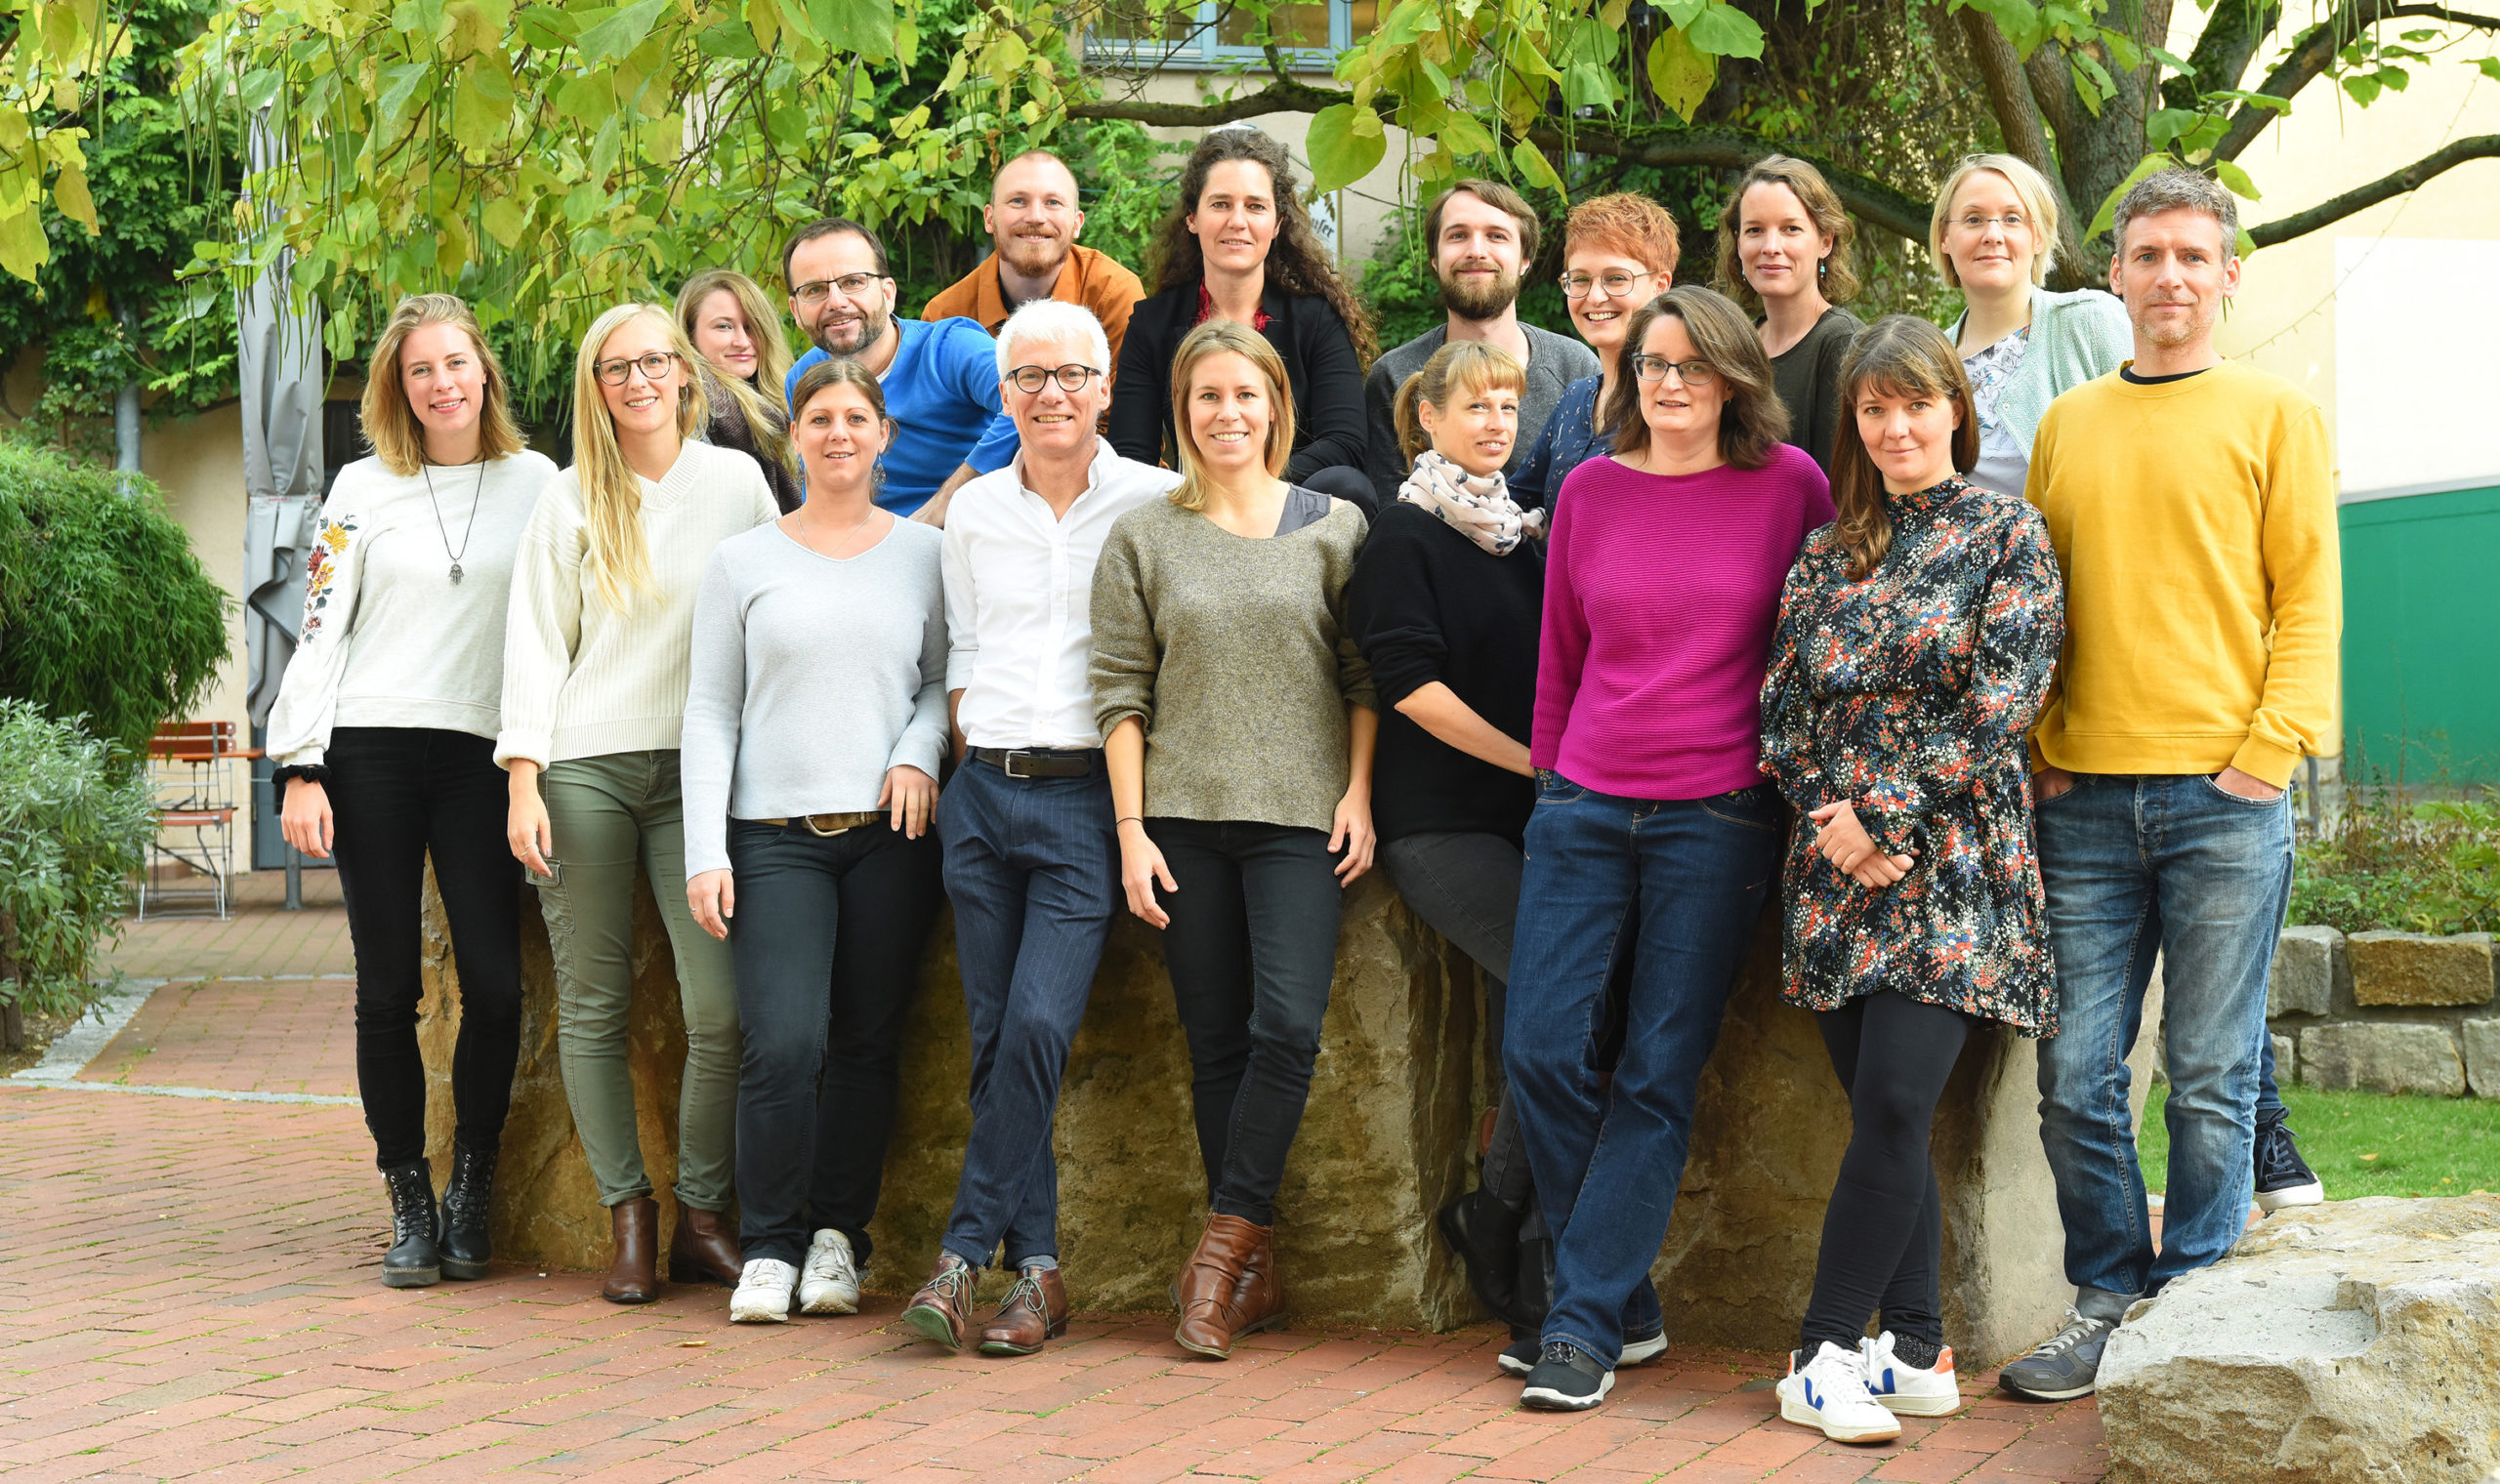 tippingpoints Teamfoto